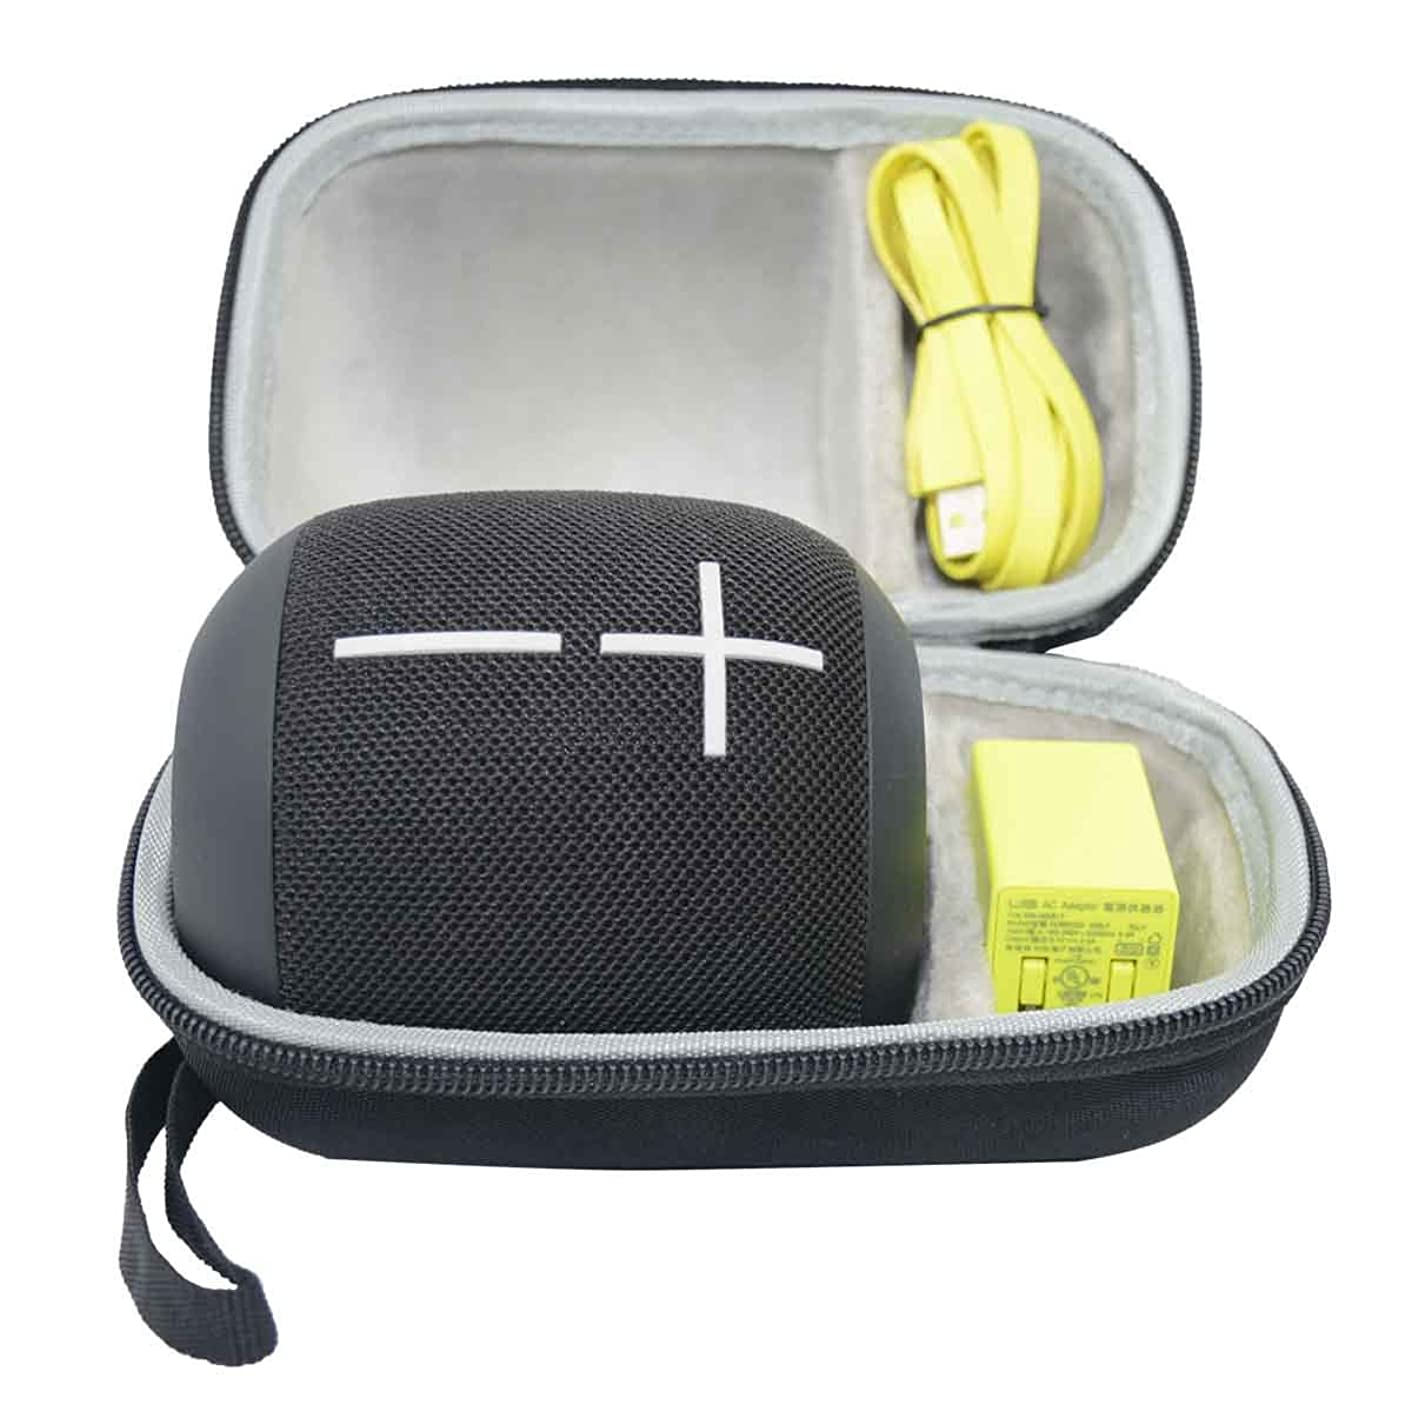 SANVSEN Hard EVA Case Travel Bag for Ultimate Ears UE WONDERBOOM IPX7 Waterproof Portable Bluetooth Speaker